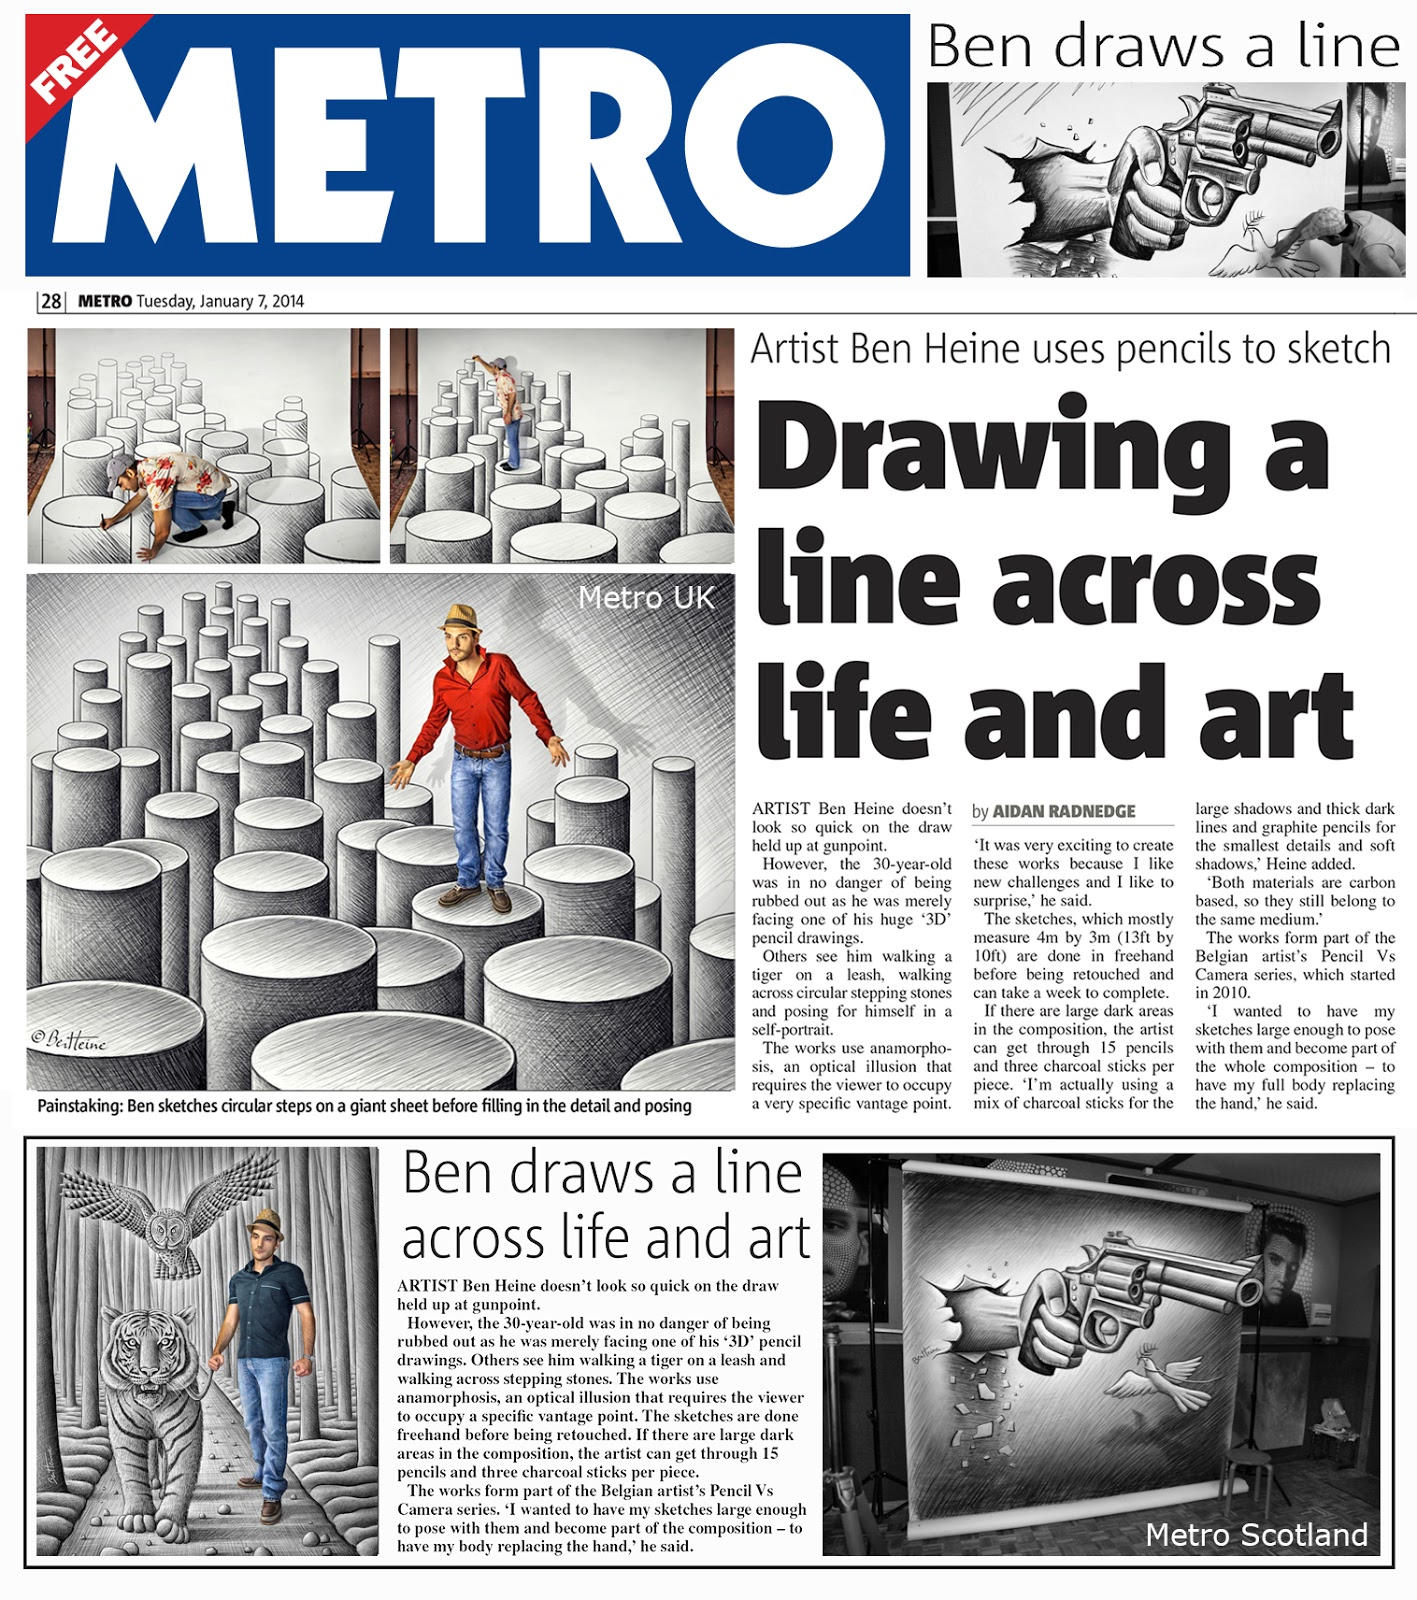 Ben Heine Art - News Article in Metro - UK (January 2014)